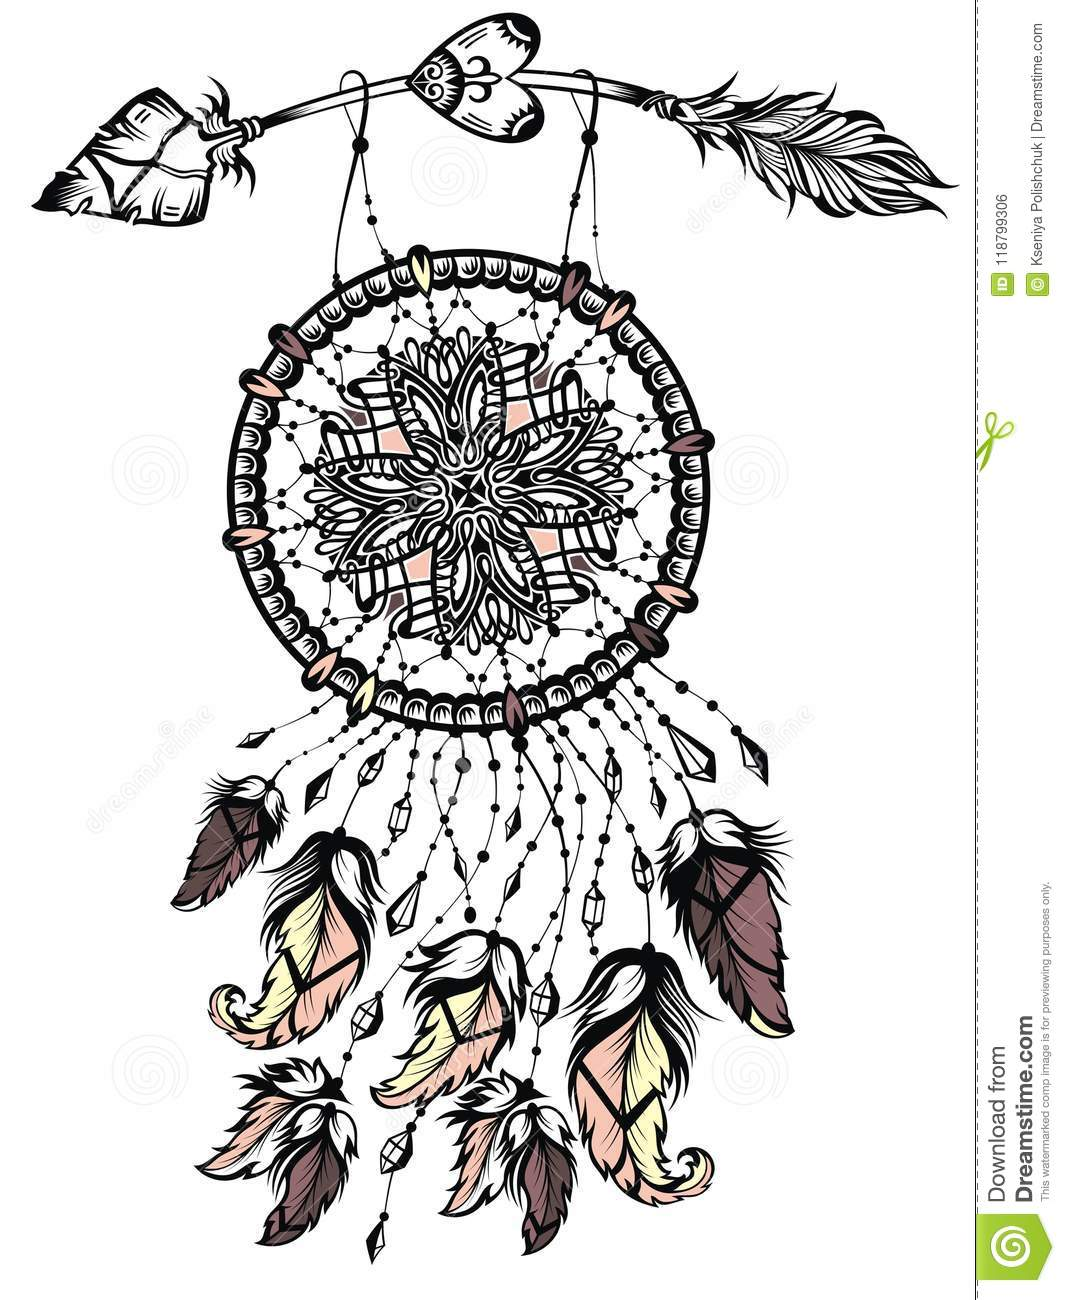 ec6347442 Illustration of dream catcher with arrow, native american poster. Tattoo  designIt may be used for design of a t-shirt, bag, postcard, a poster and  so on.